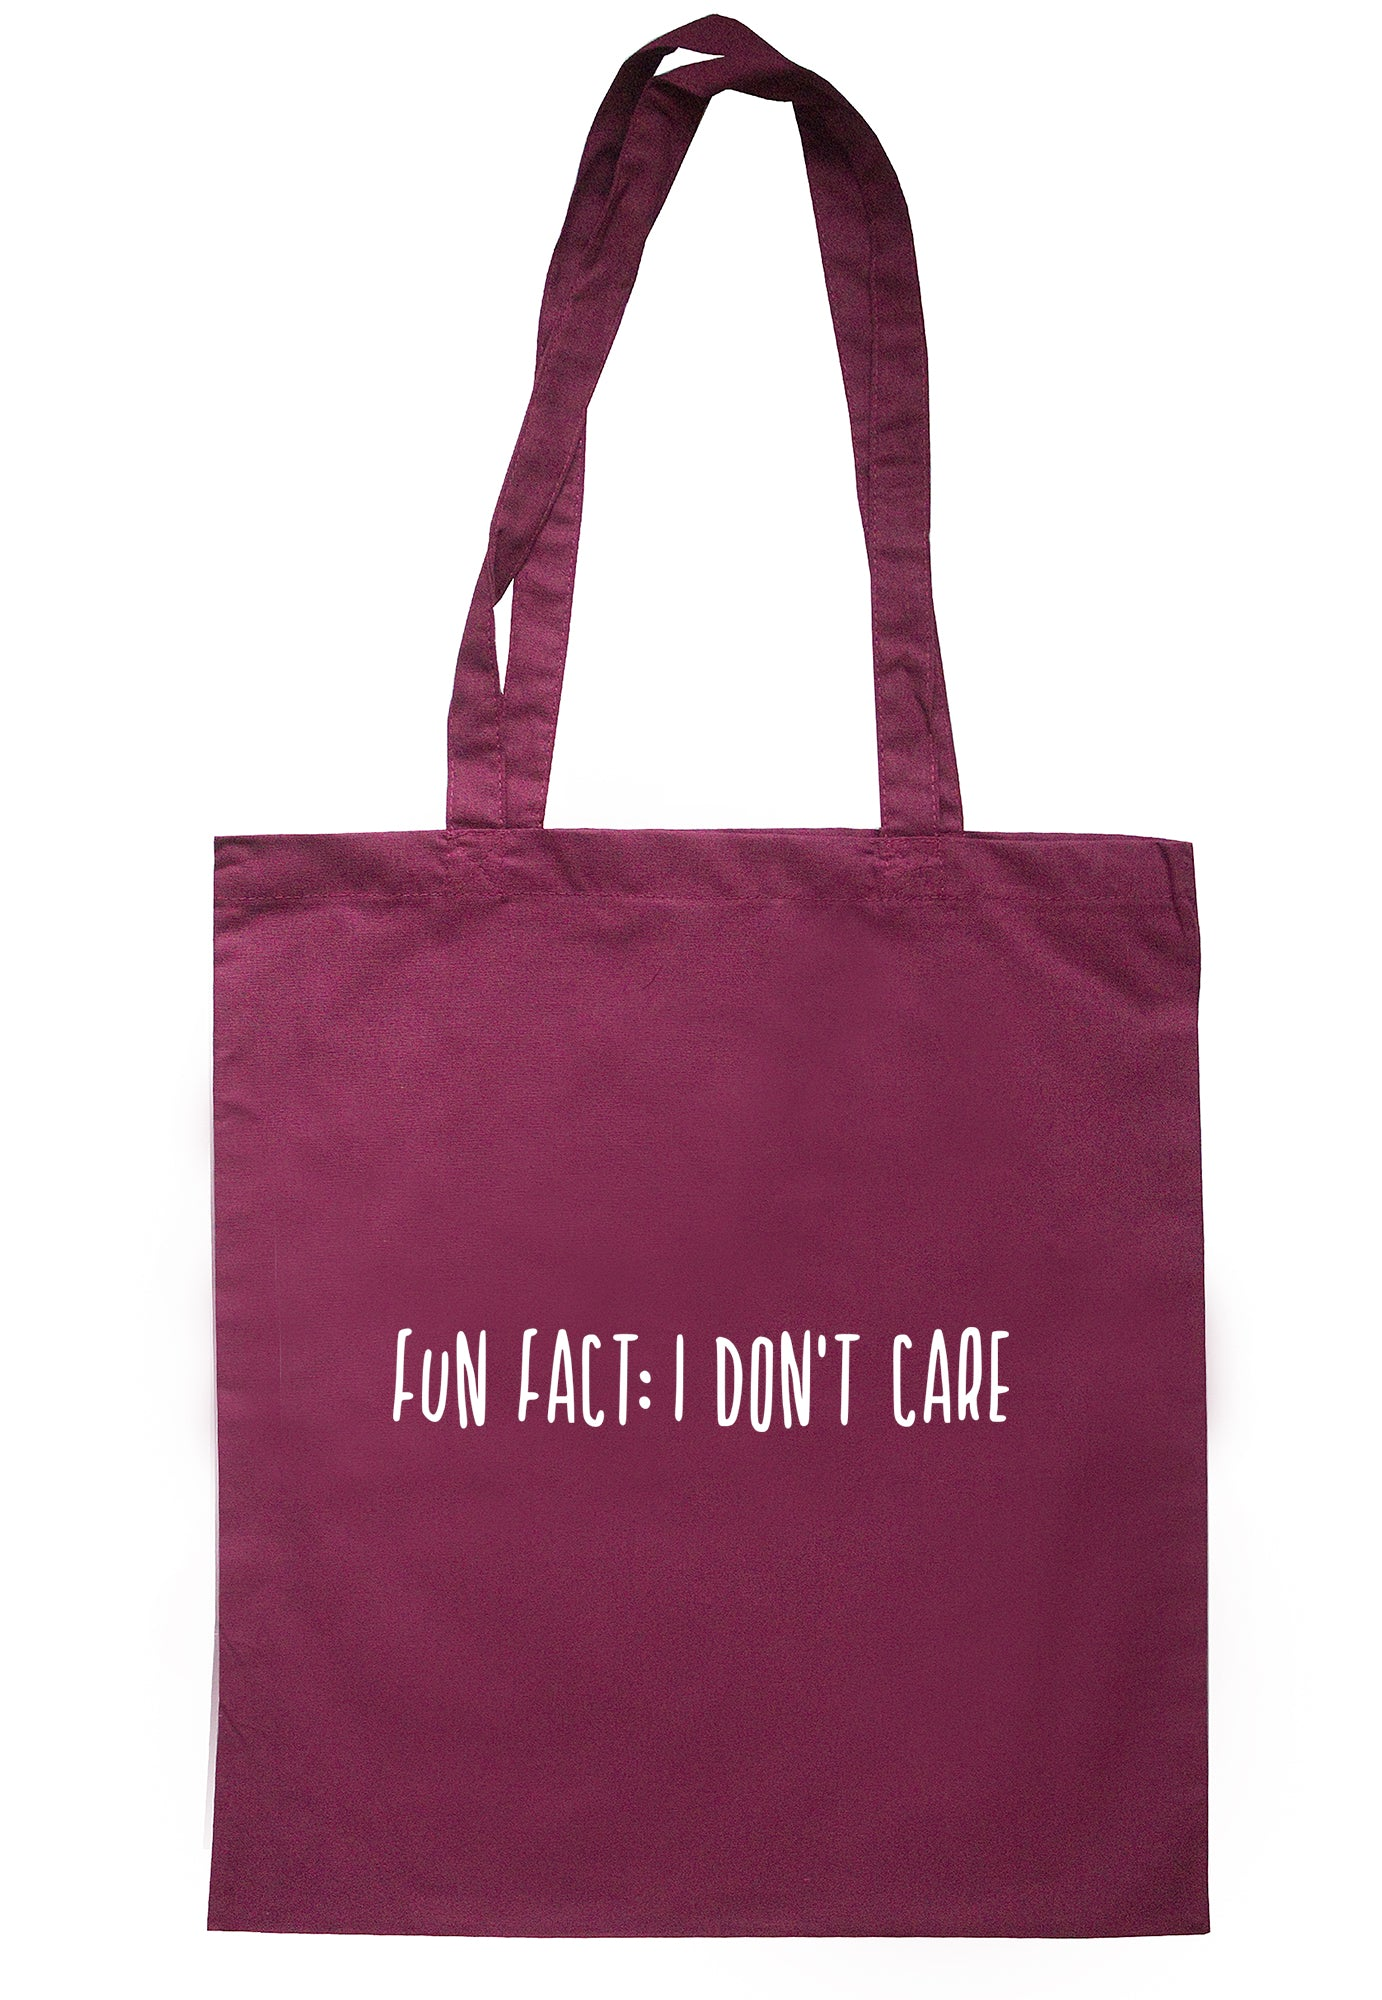 Fun Fact: I Don't Care Tote Bag S1165 - Illustrated Identity Ltd.